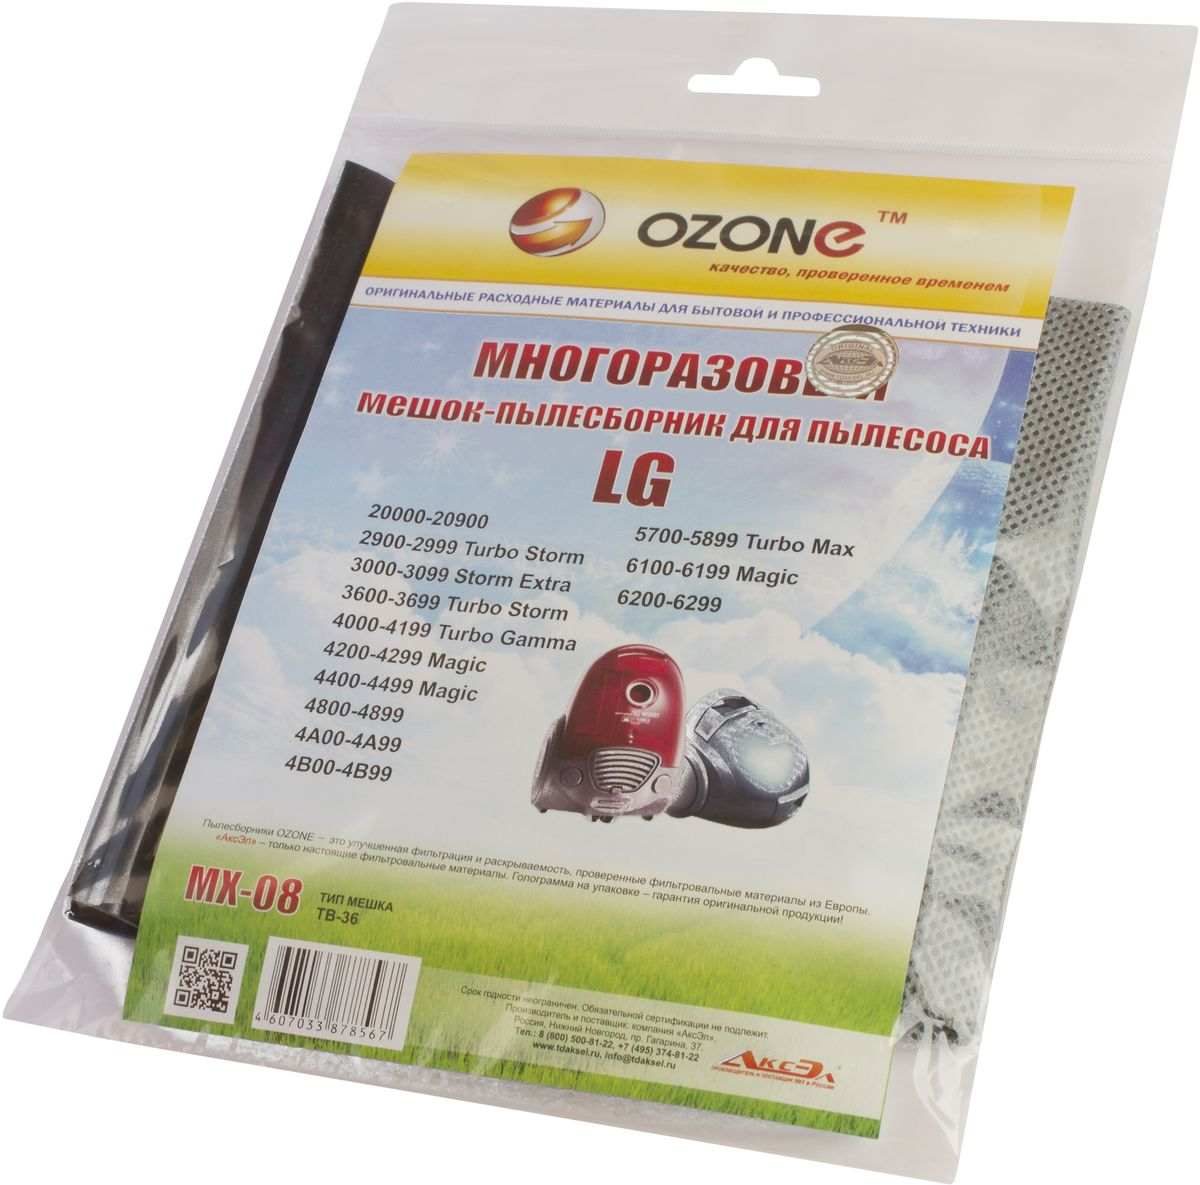 Ozone MX-08 пылесборник для пылесосов LG free shipping 100pcs lot me7660cs1g me7660 microne sop8 ic